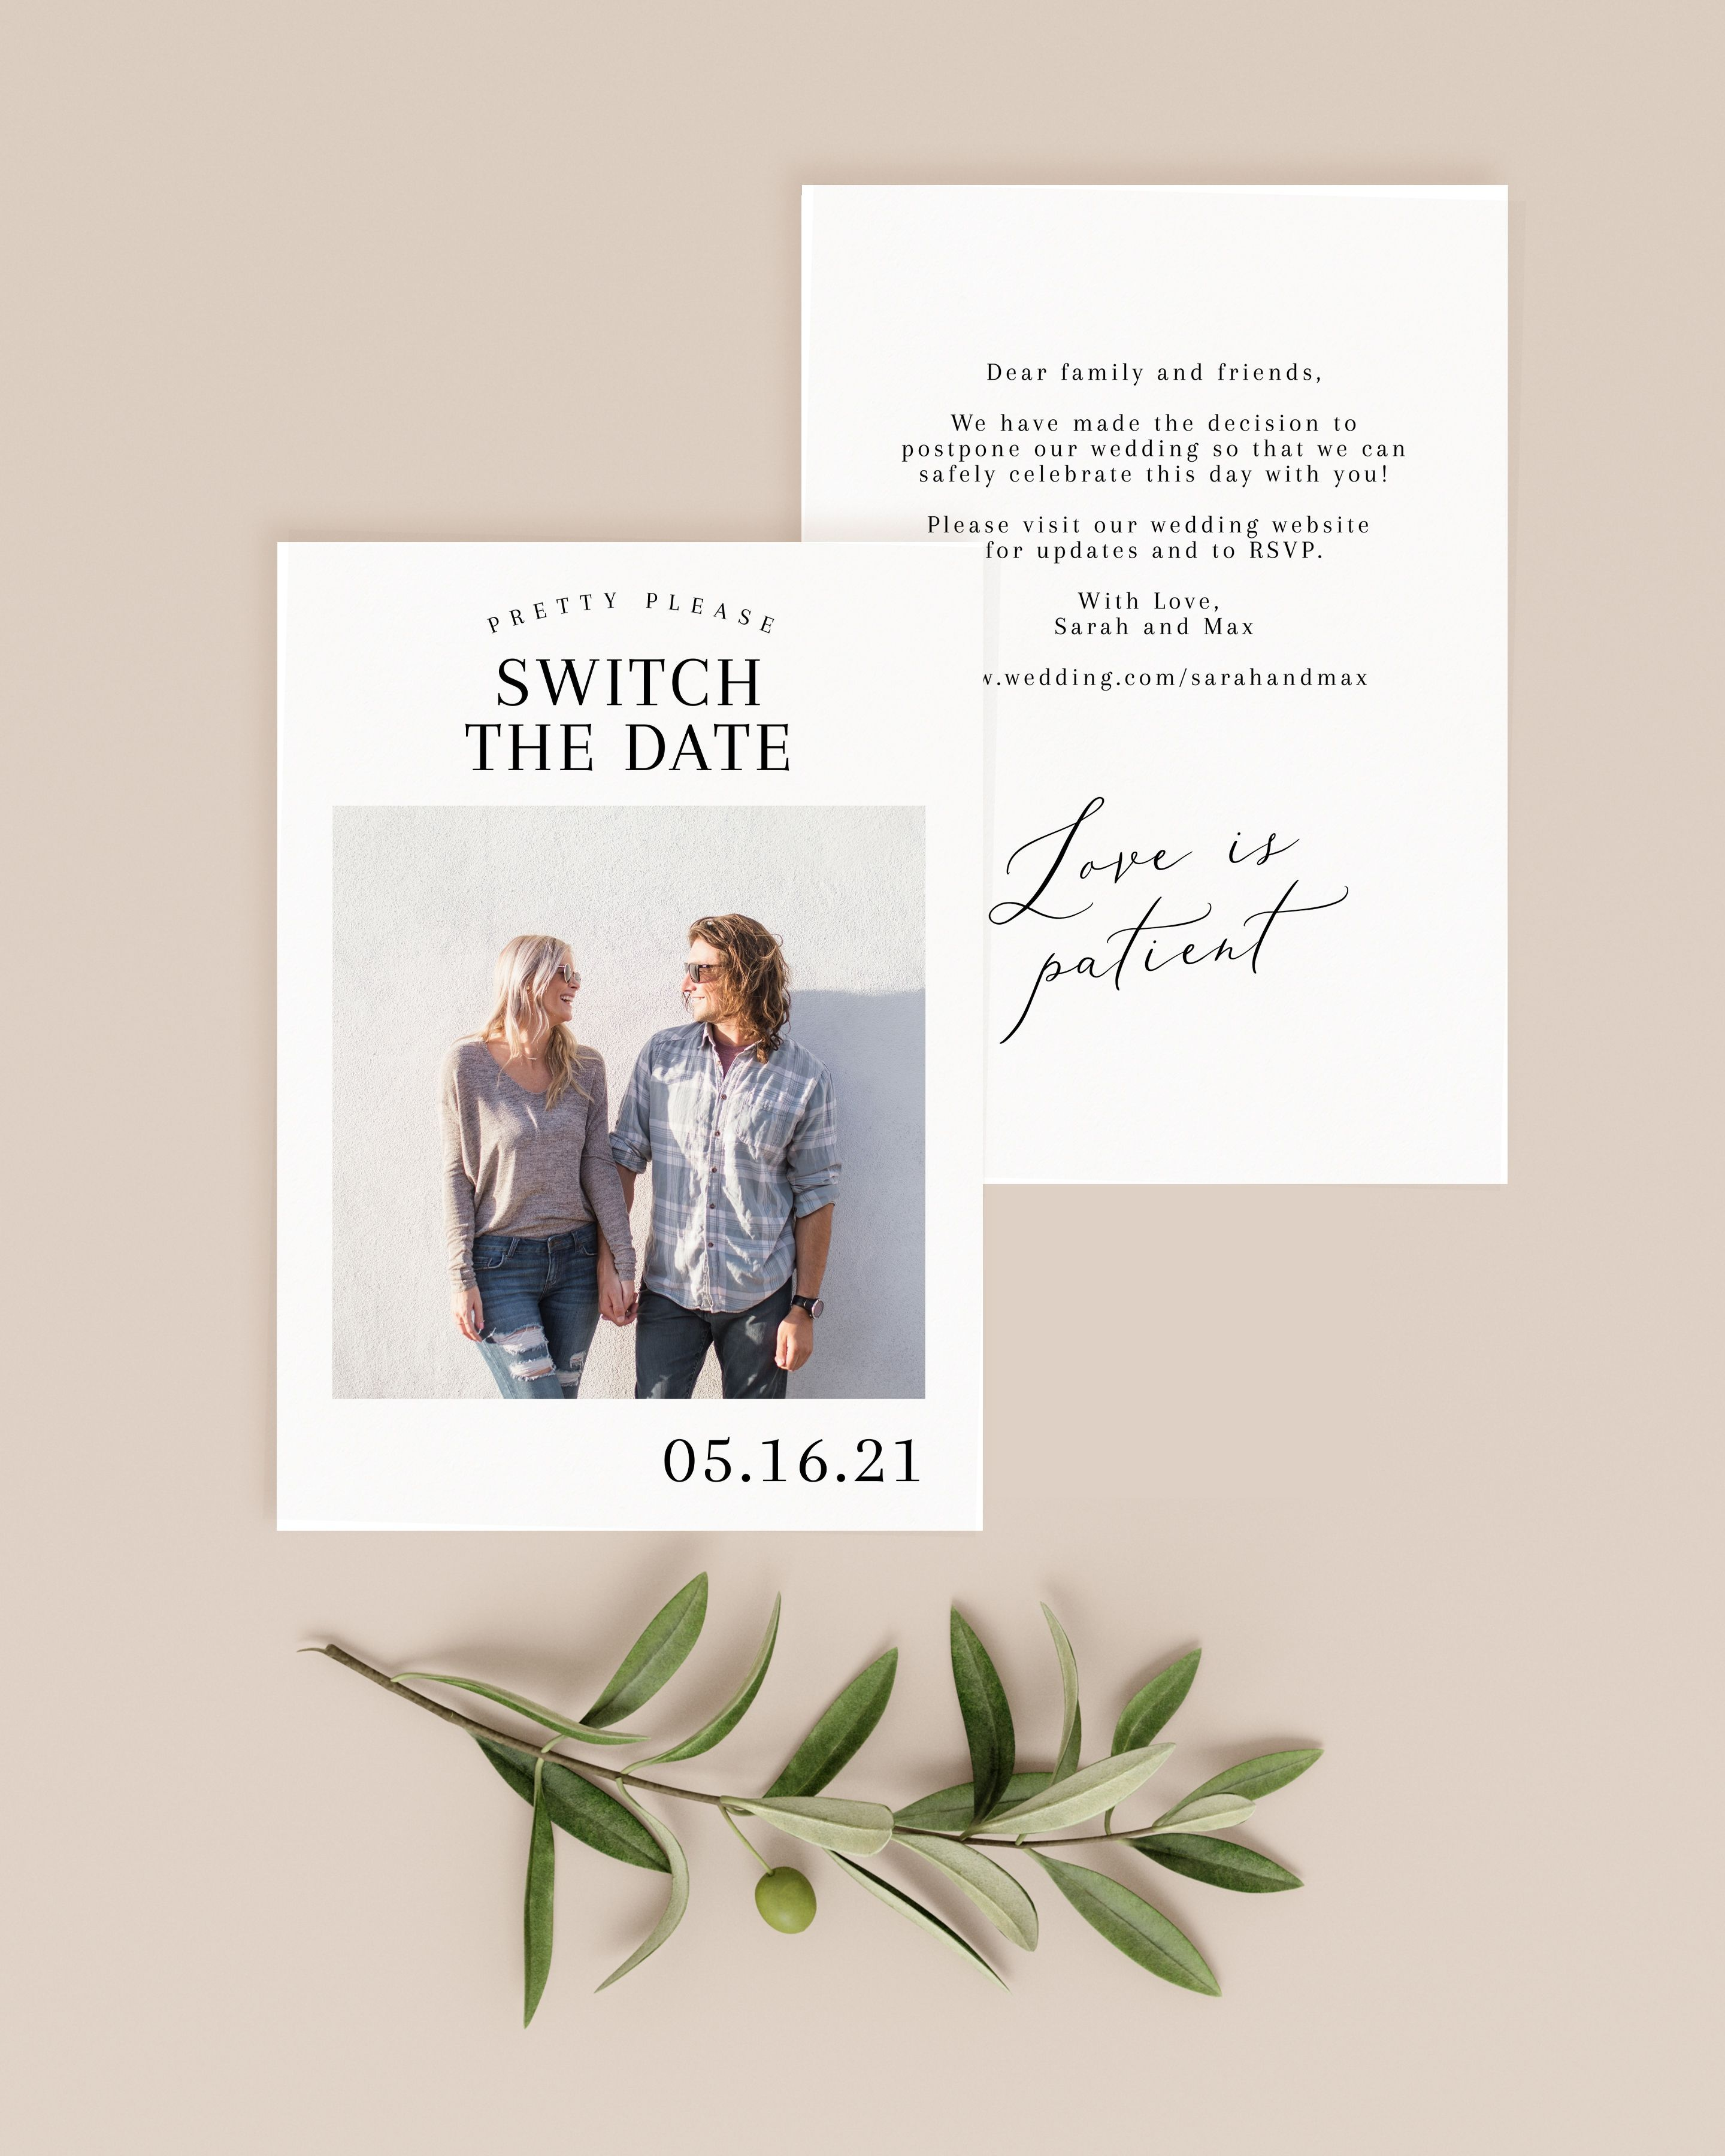 Switch the Date Postponed Wedding Announcement, Change the